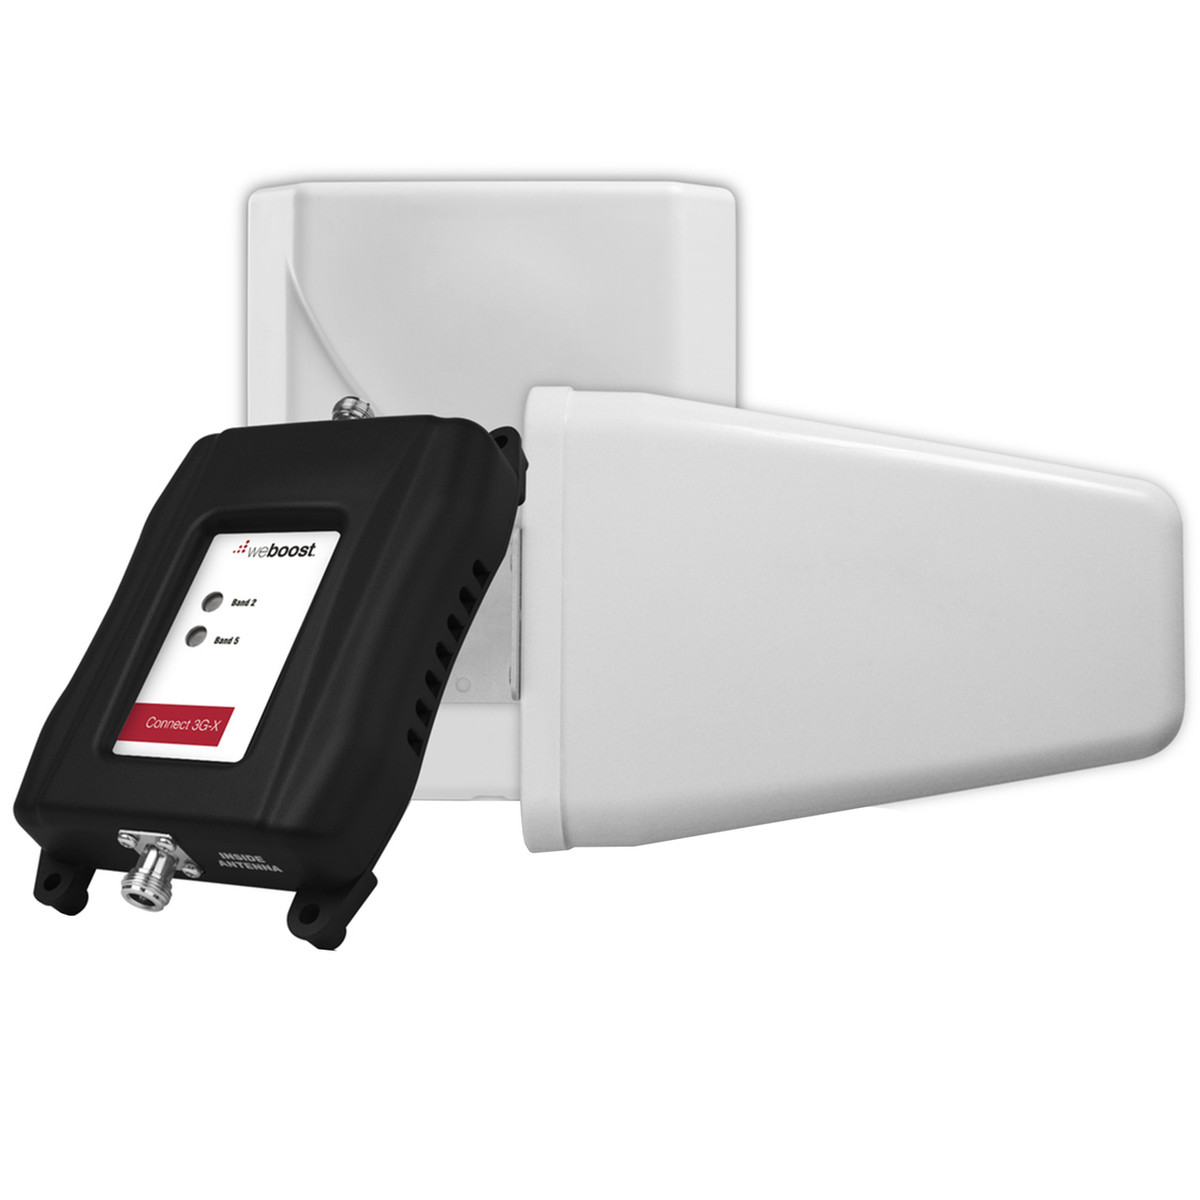 weBoost Connect 3G-X Cell Phone Signal Booster   470105 Complete Kit